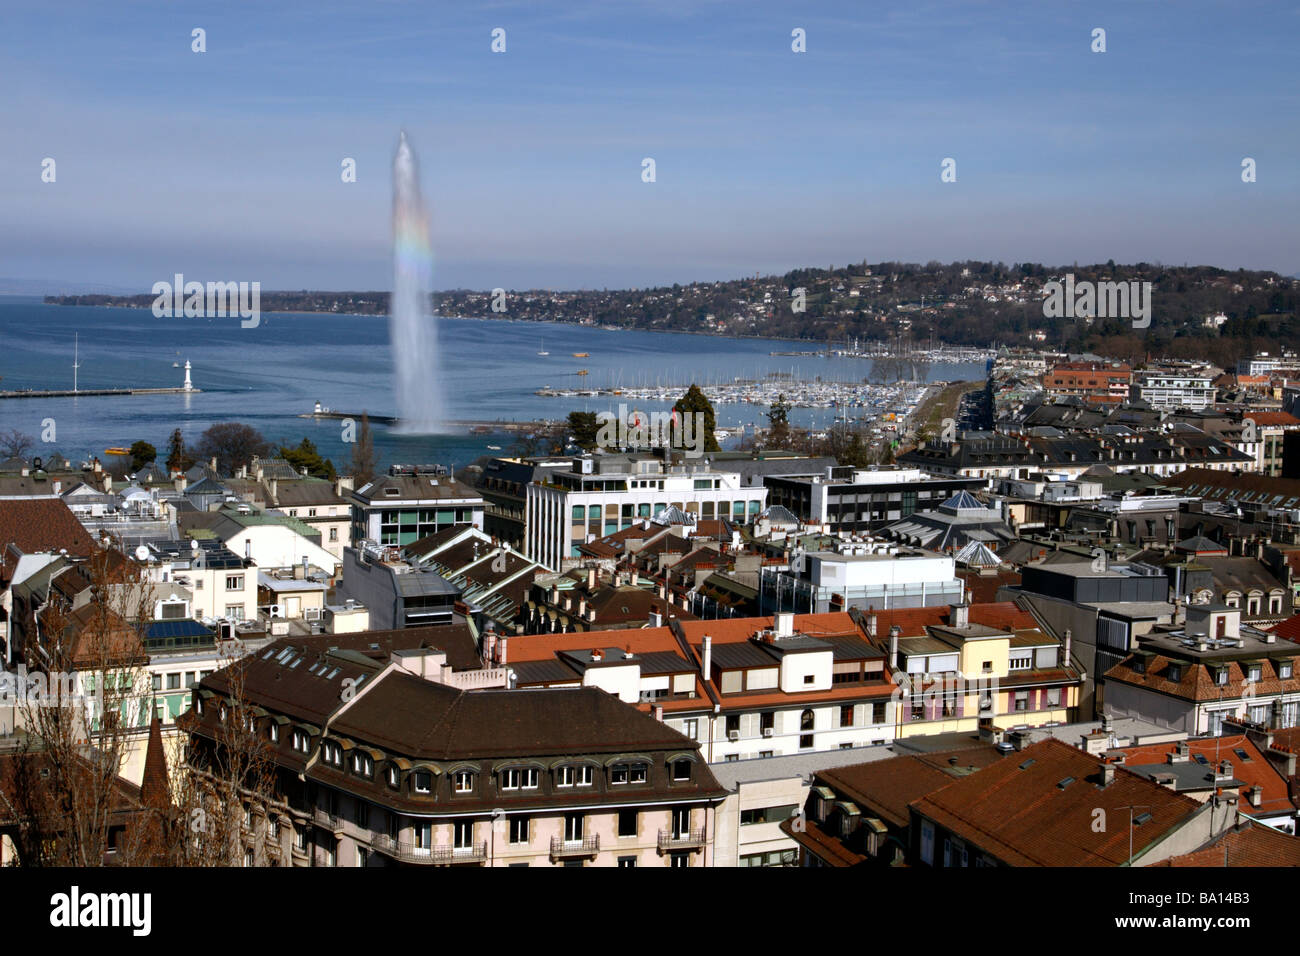 Lake Geneva and Jet d'Eau seen from St Peter's Cathedral, Geneva, Switzerland - Stock Image